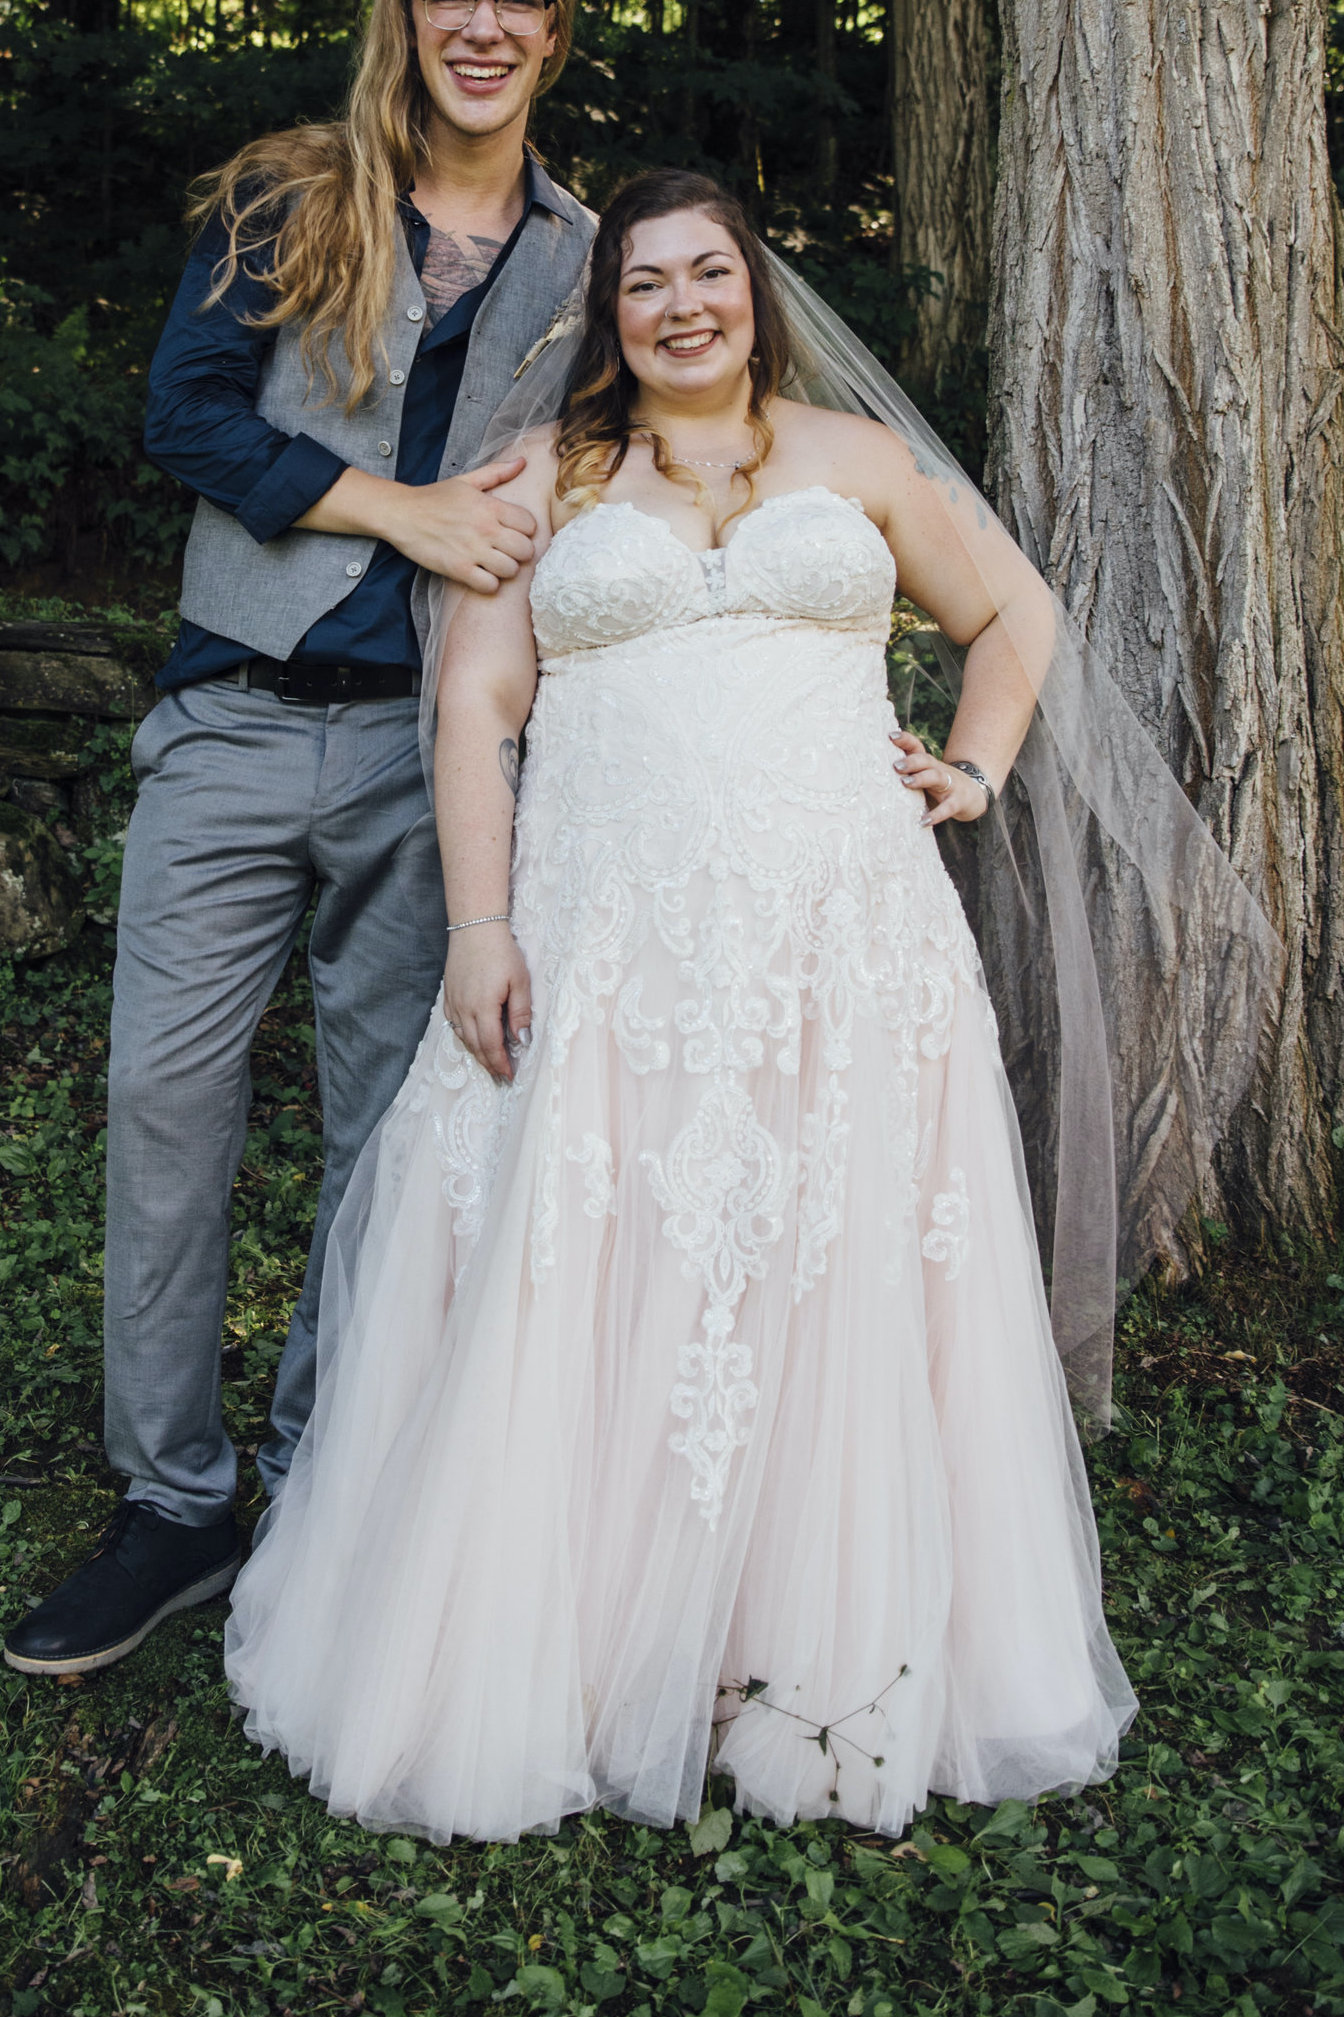 Anomalie specialized in making online wedding dresses for plus sized brides, including dresses with blush lining and floral lace & tulle.